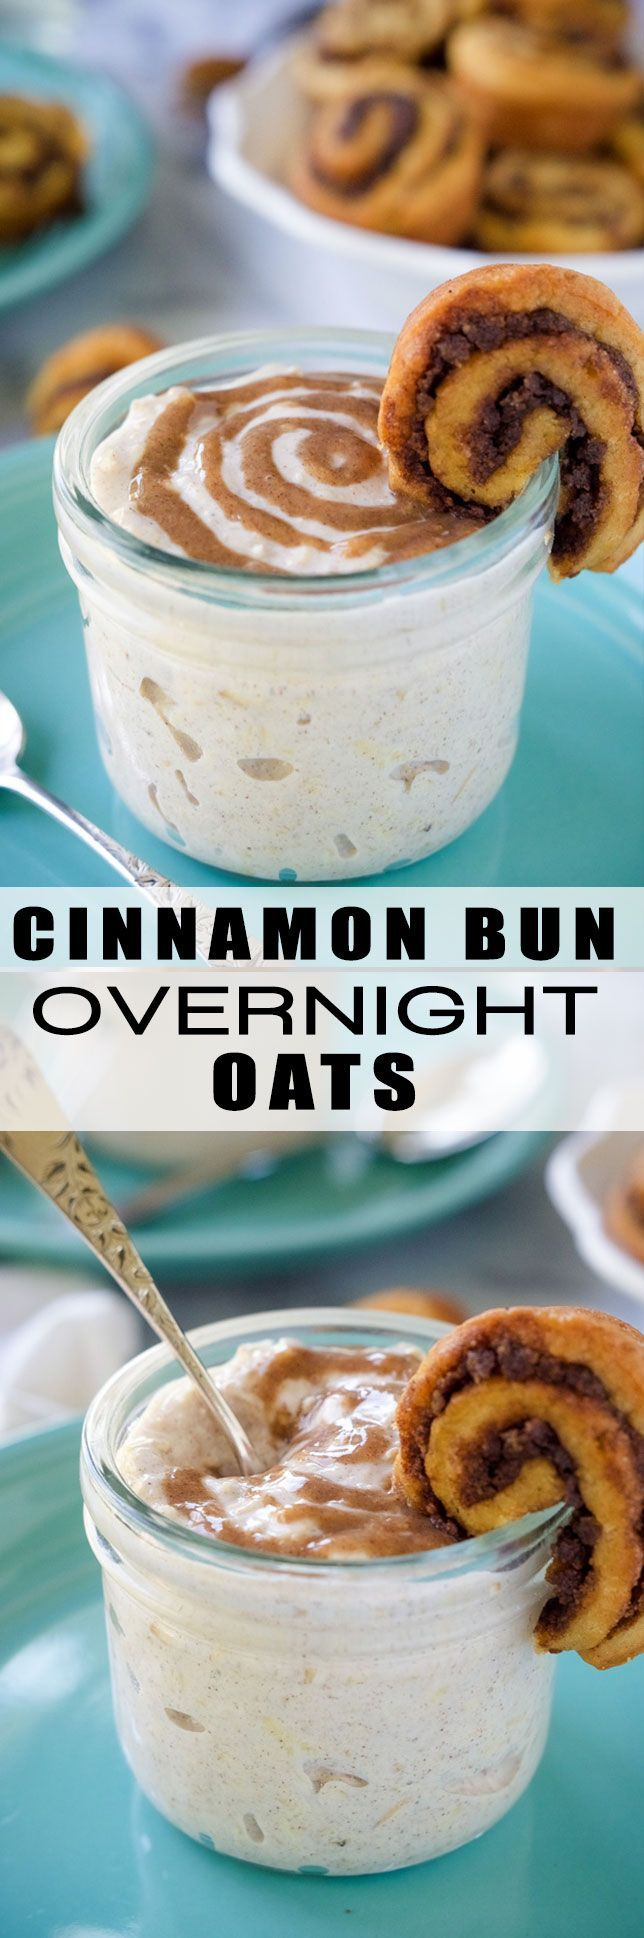 Cinnamon Bun Overnight Oats are a cinnamon bun lovers dream! Flavored with cinnamon, a bit of vanilla and greek yogurt! An easy breakfast idea that you can make the night before!